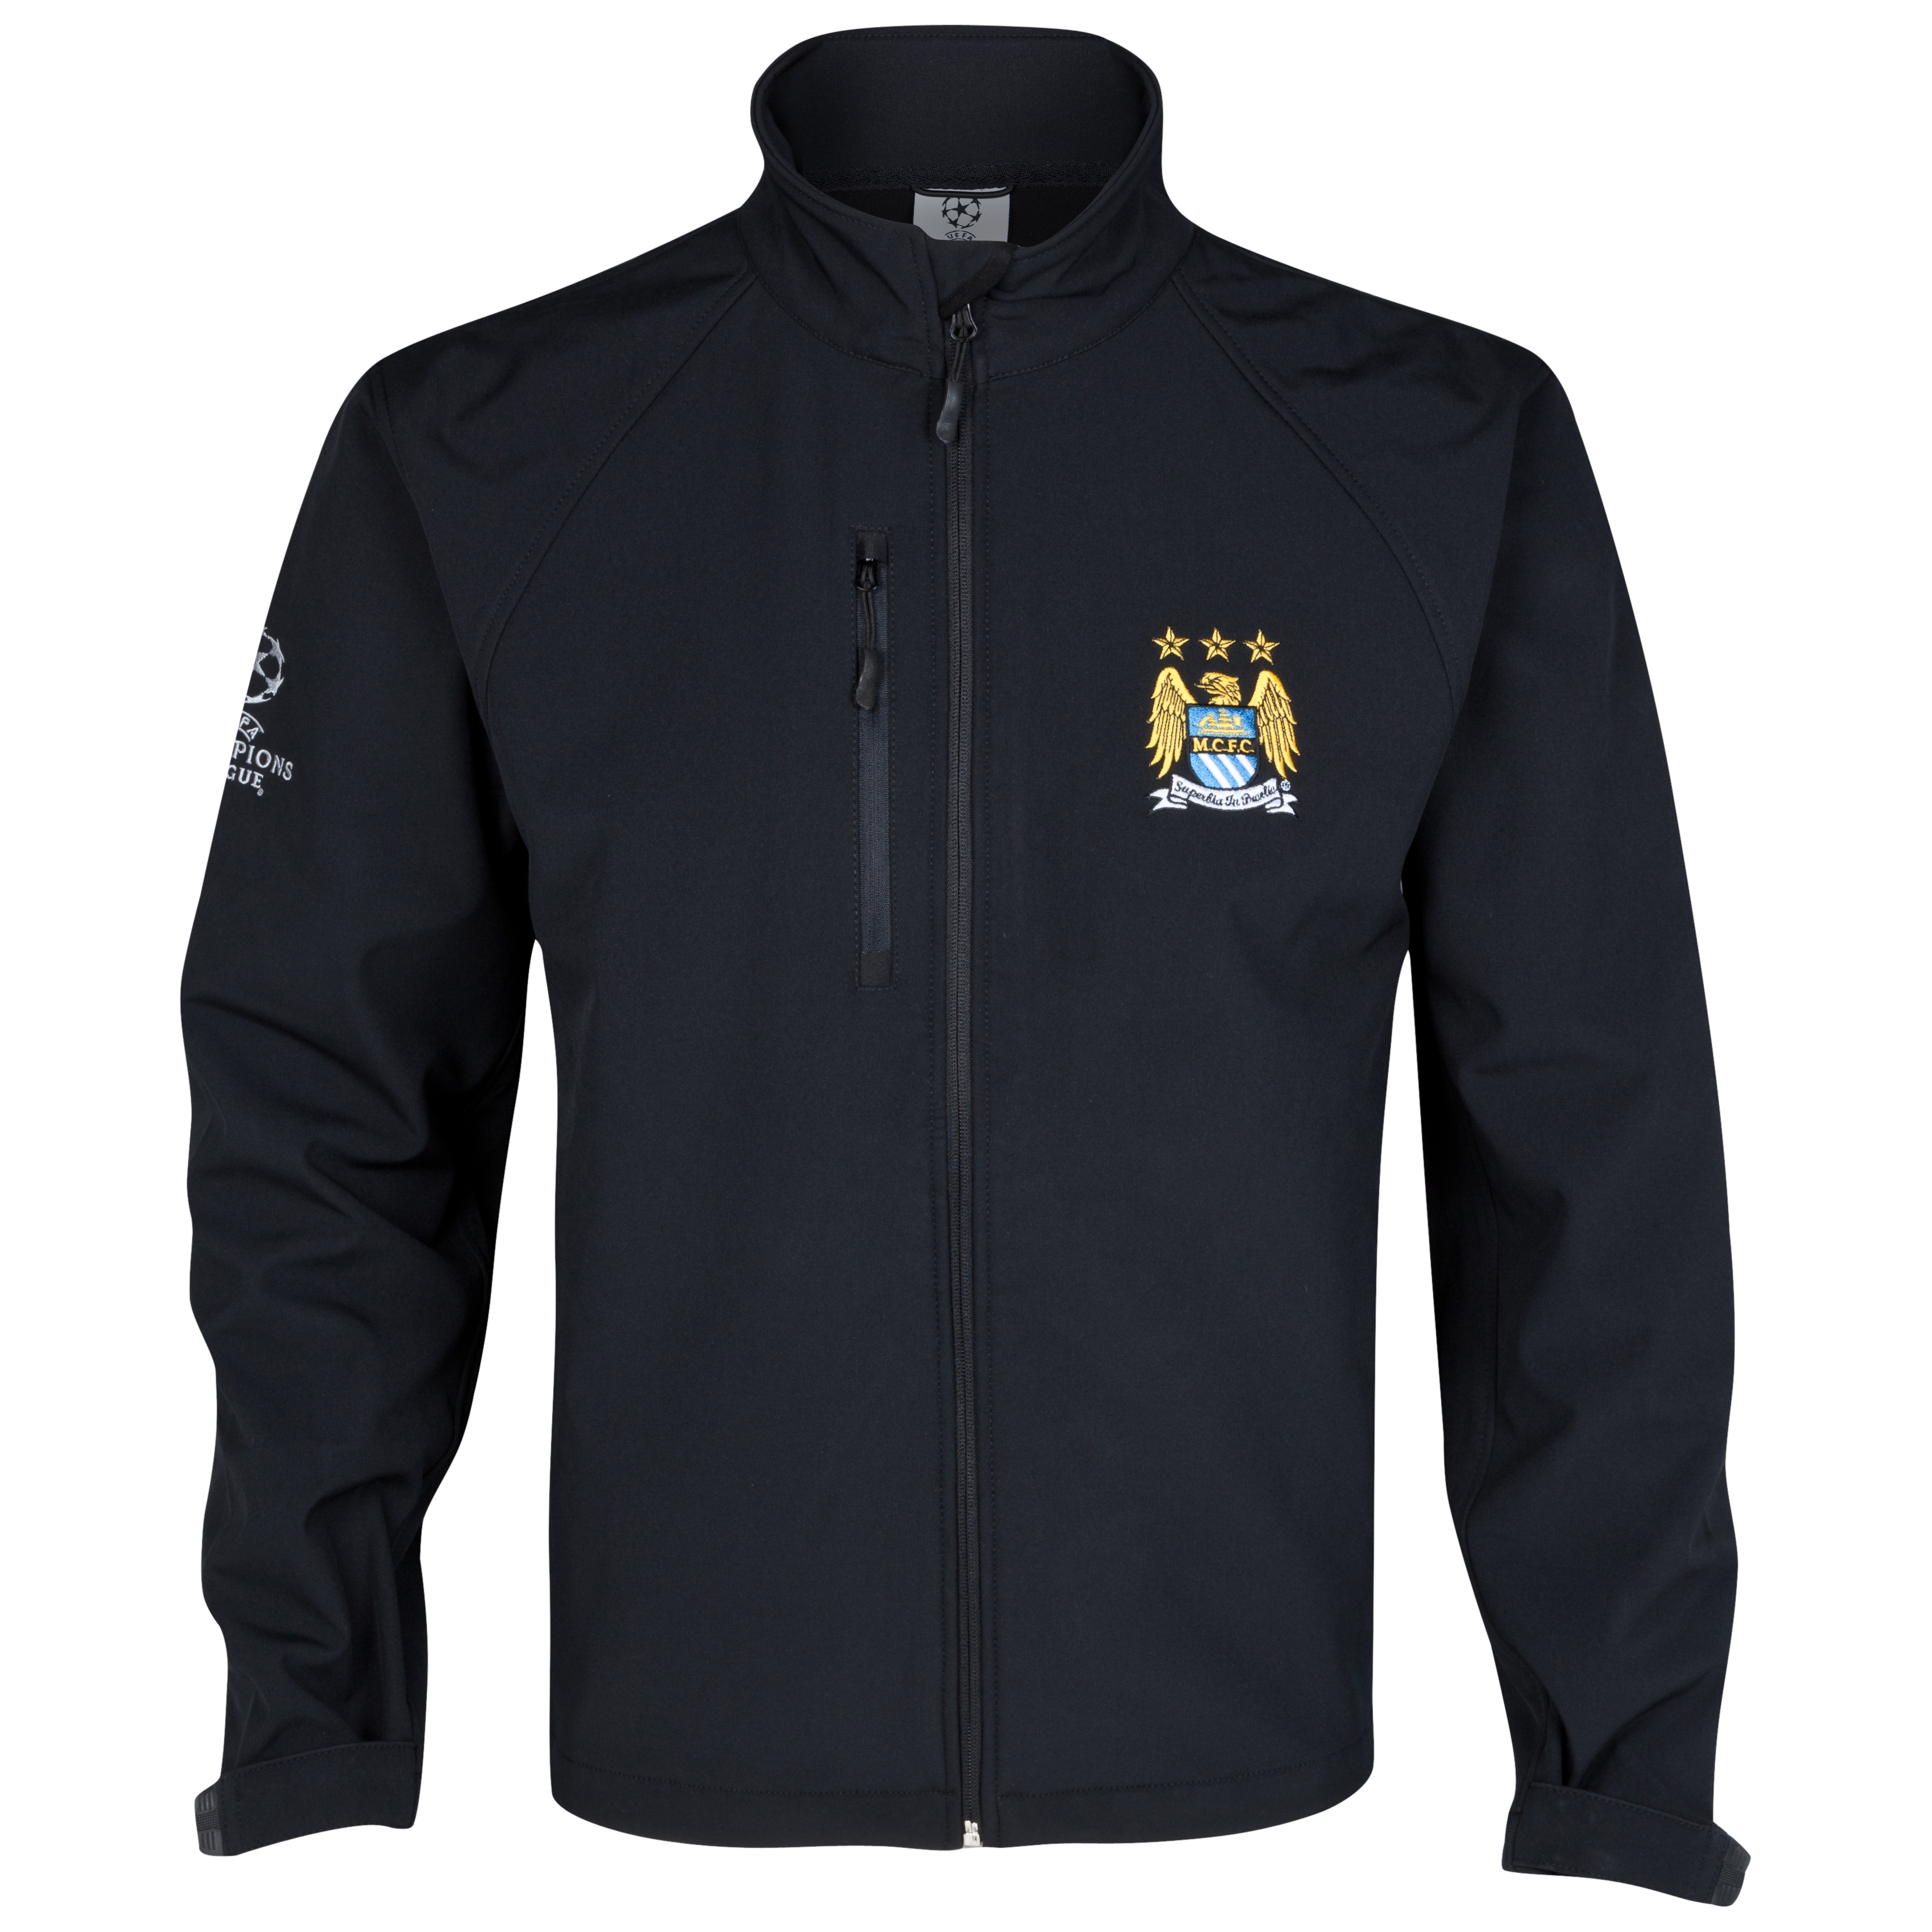 Manchester City UEFA Champions League Embroidered Soft Shell Jacket - Black